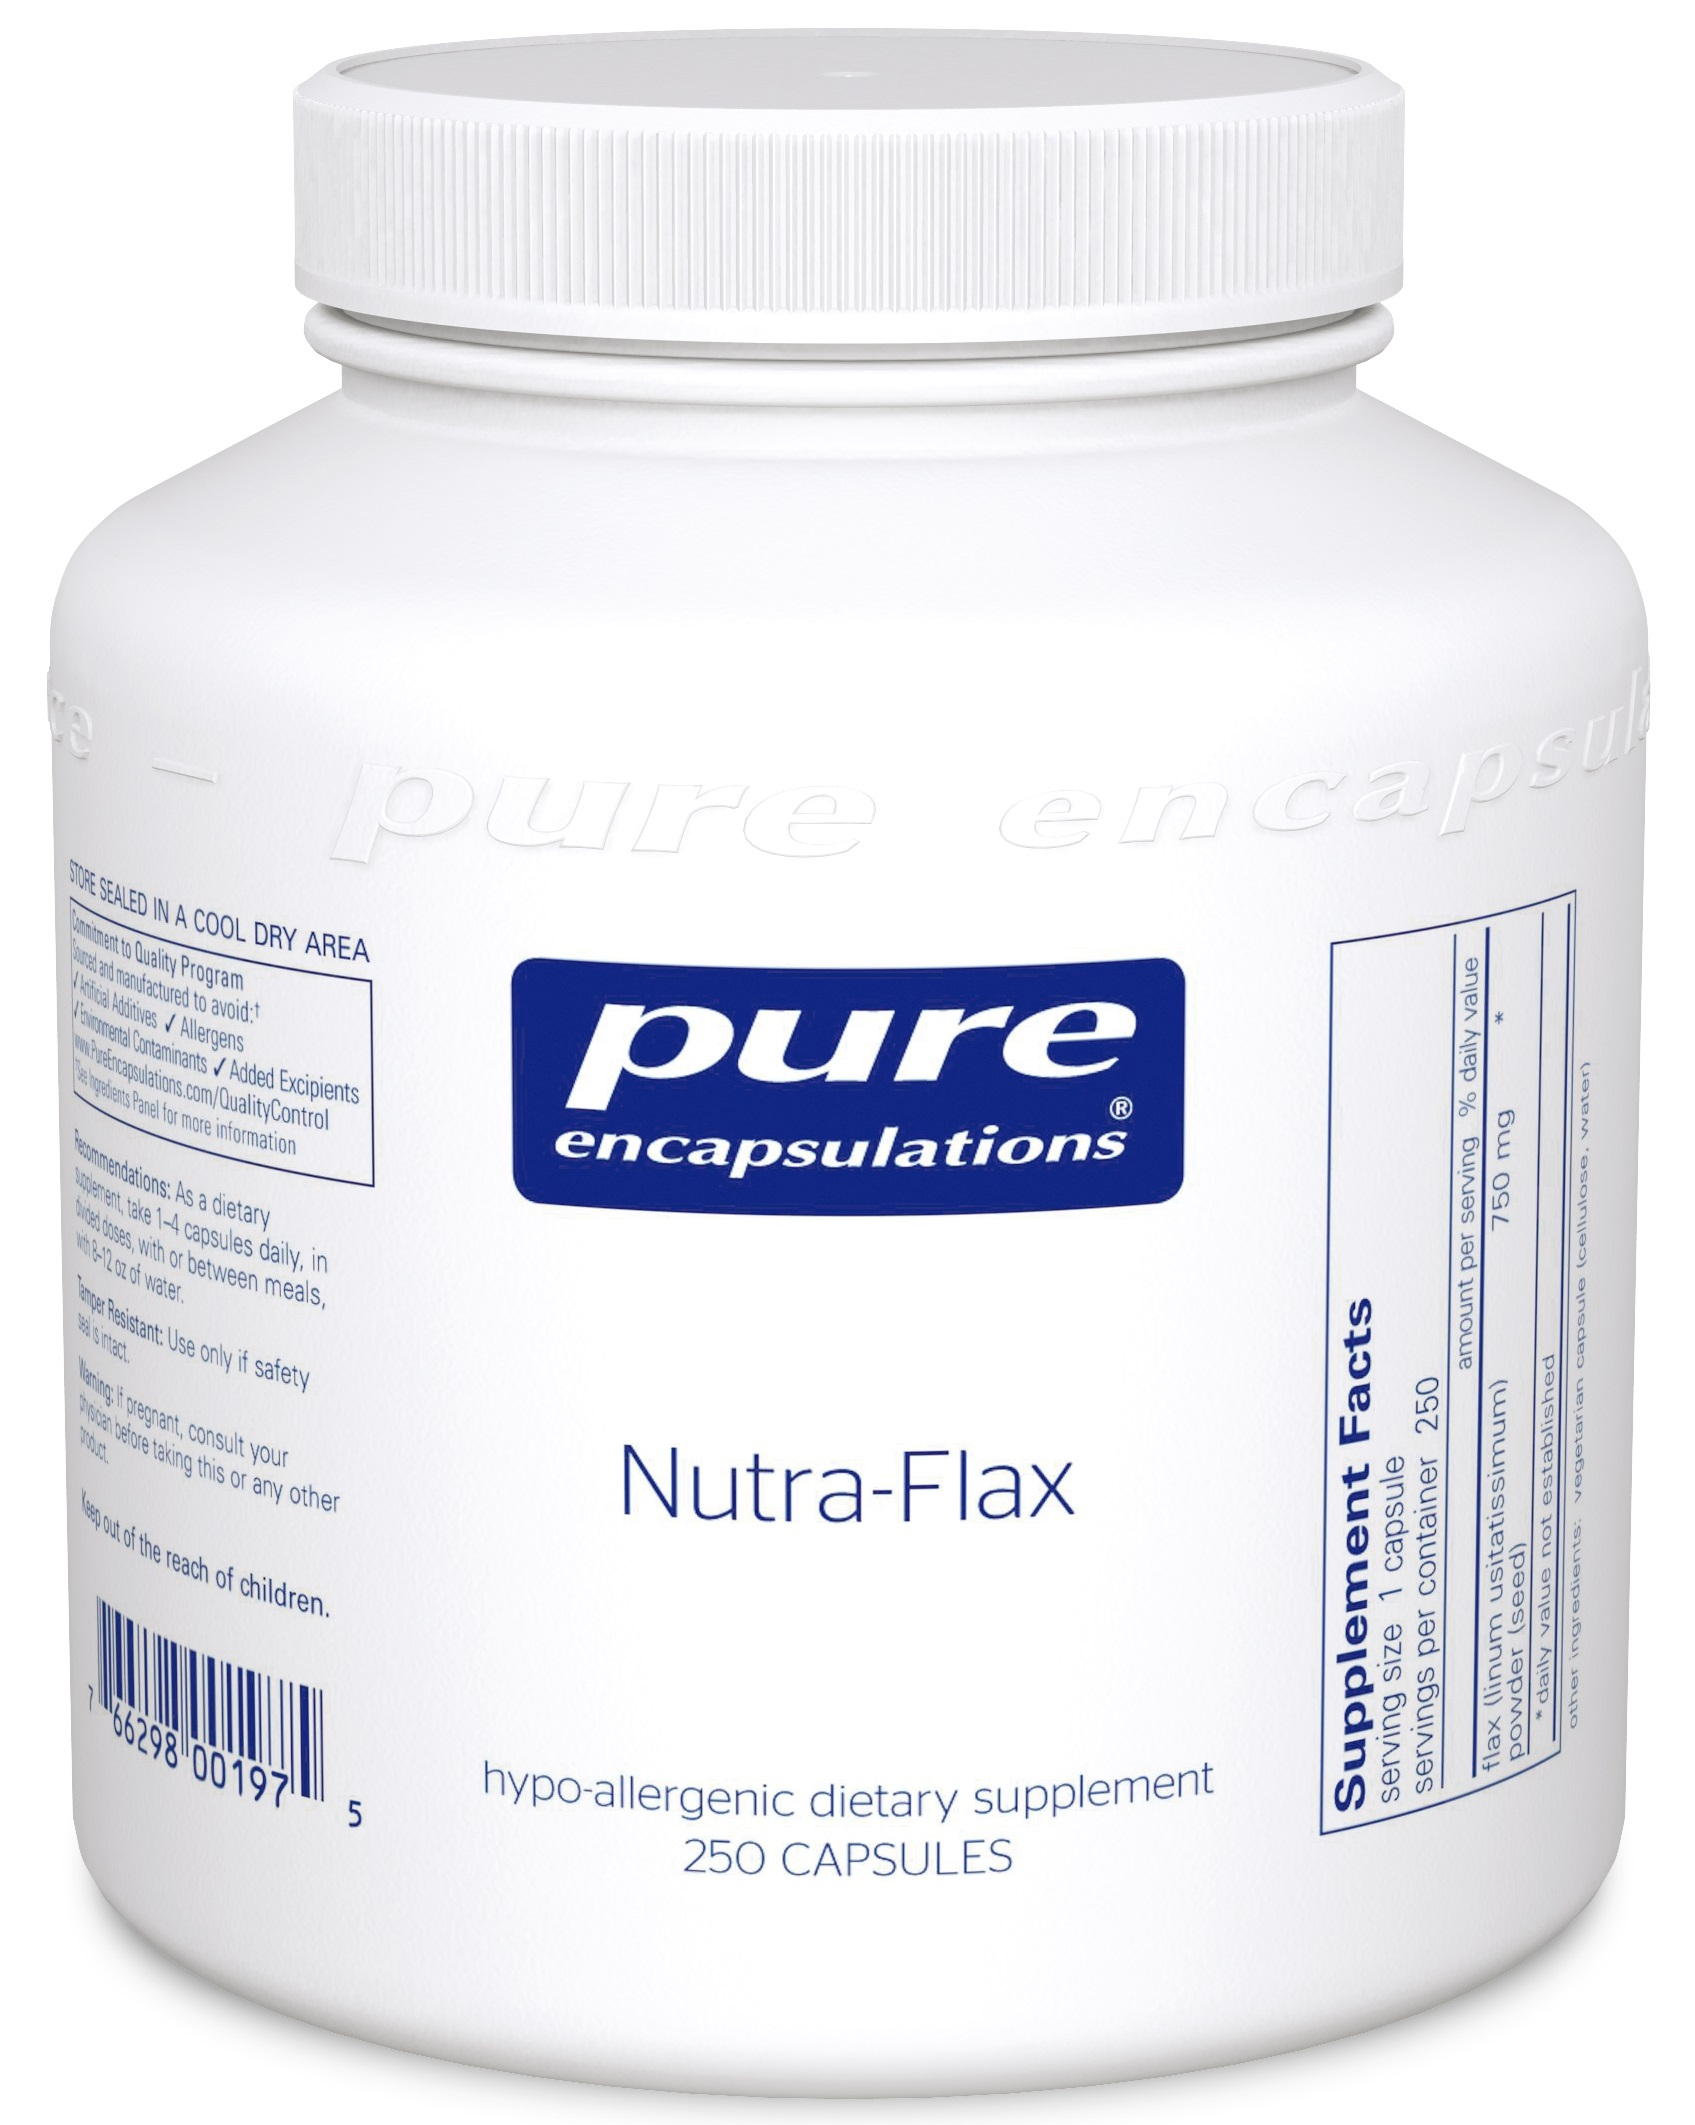 Pure Encapsulations Nutra-Flax